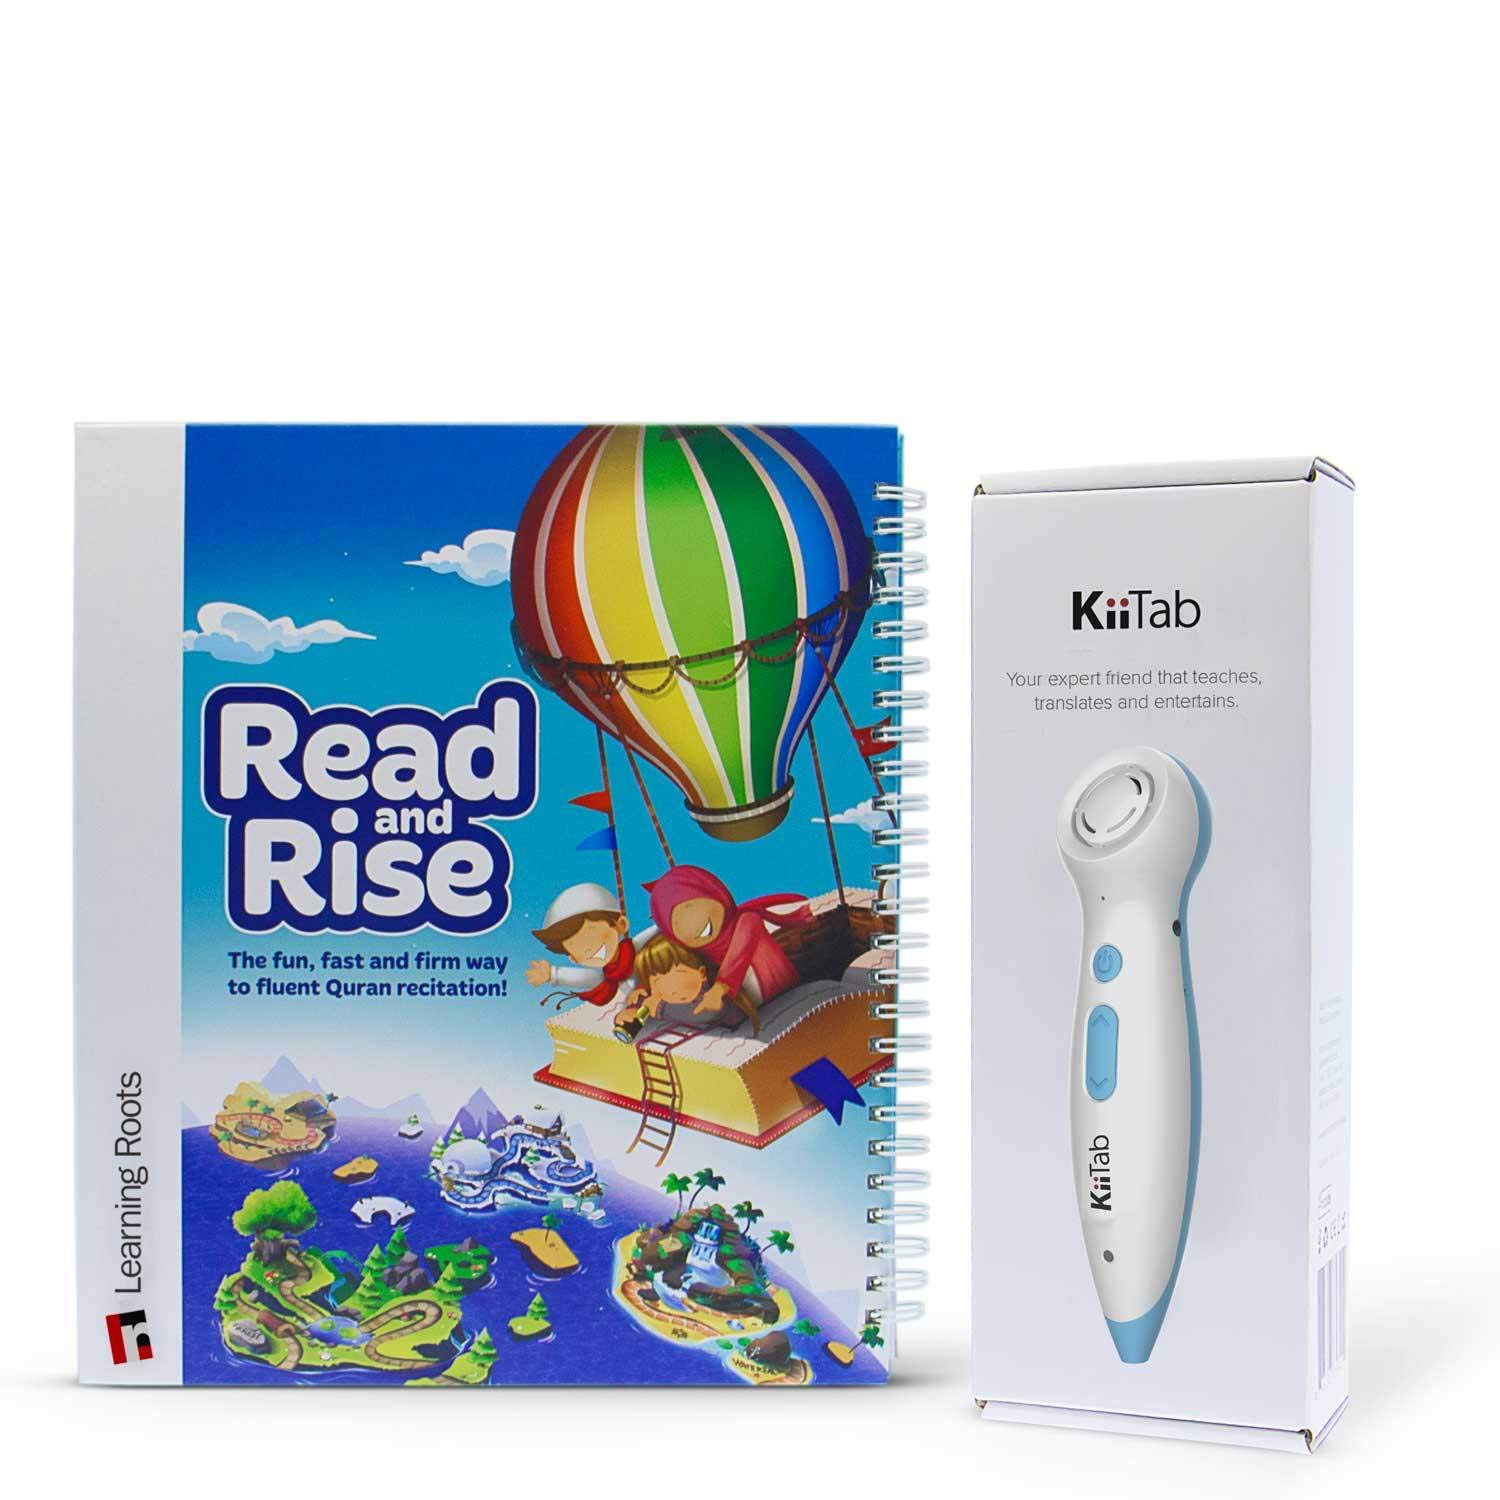 Read and Rise Book with Kittab Smart Pin for Learning Arabic and Pronunciation by Learning Roots